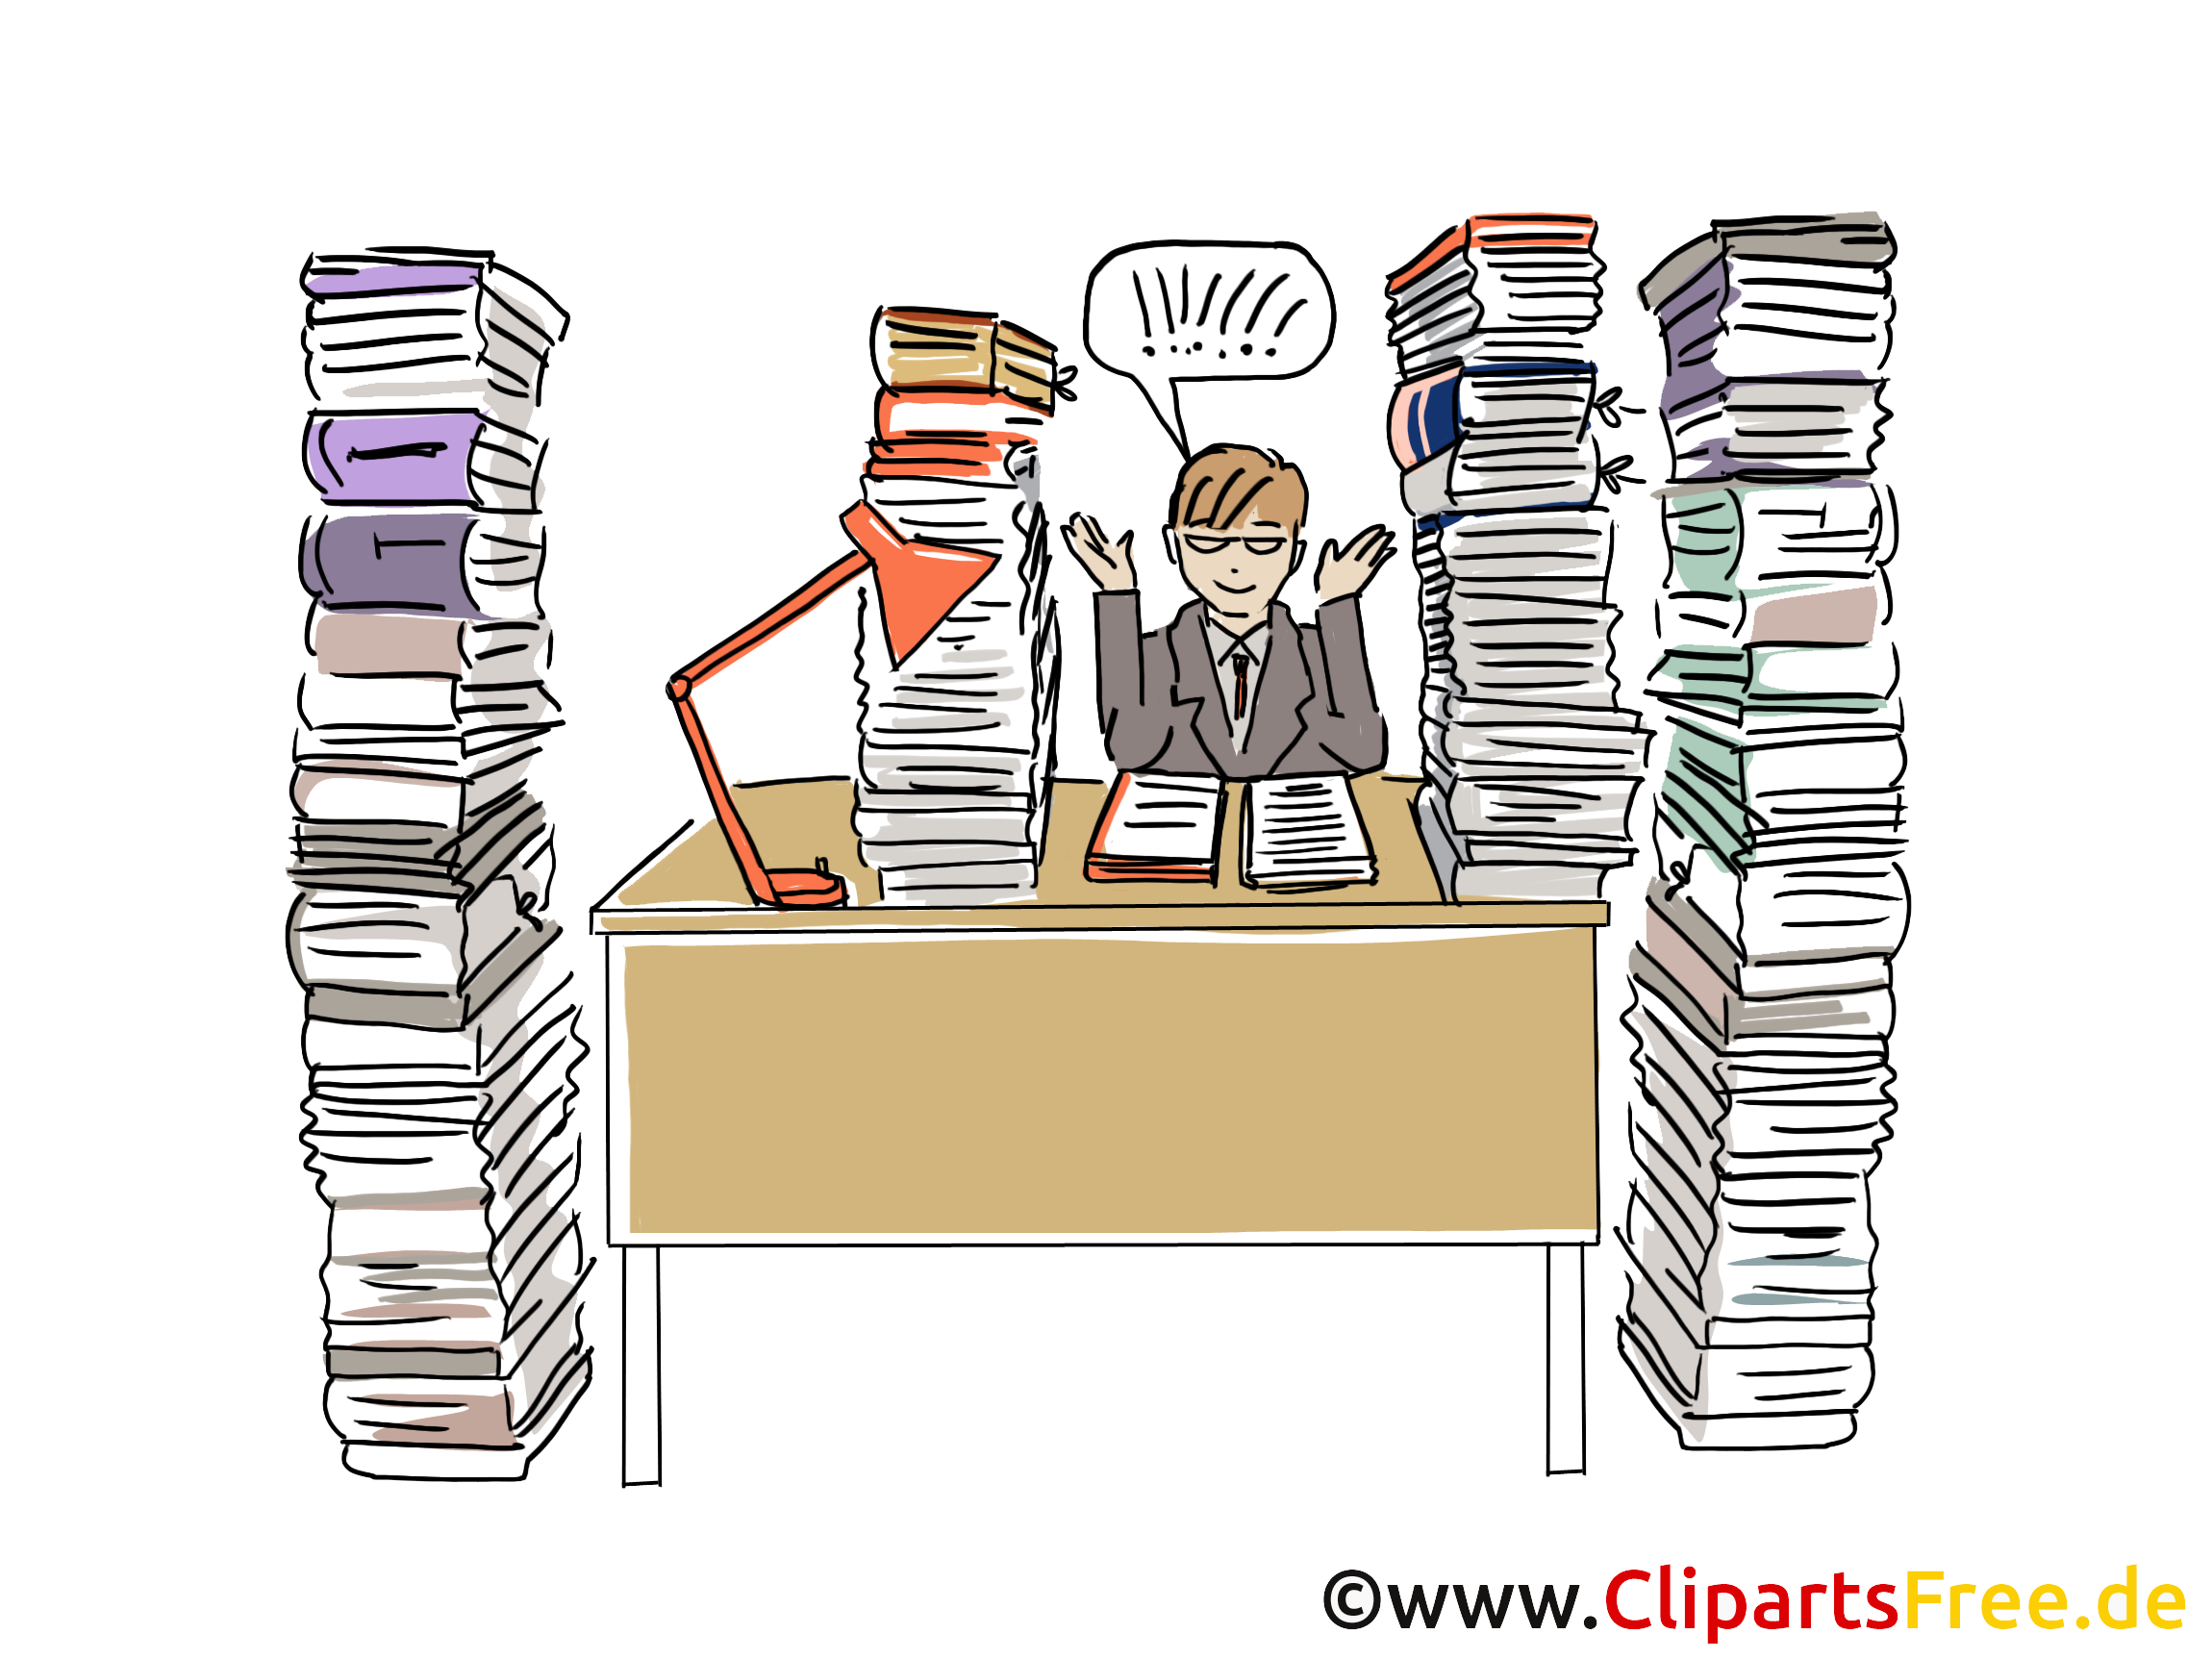 Gute arbeit clipart vector black and white library Clipart arbeit - ClipartFest vector black and white library